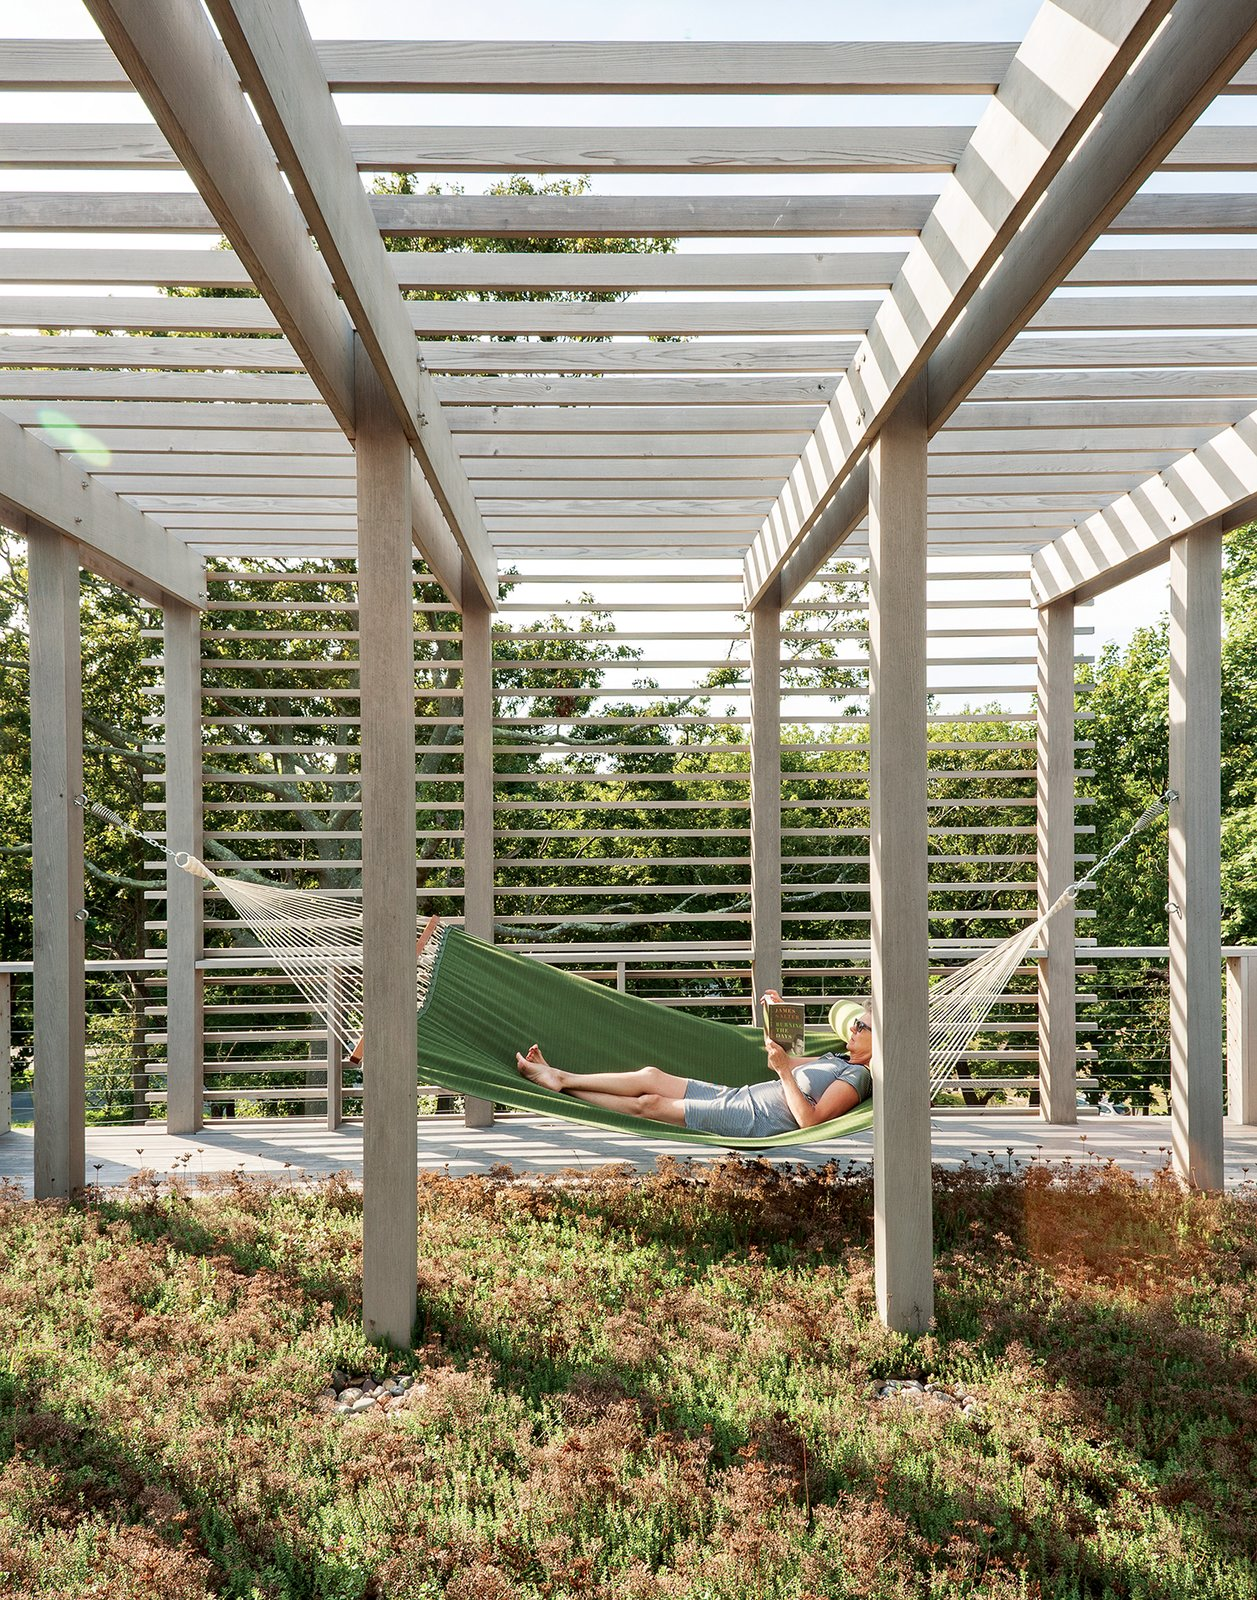 A second green roof is planted with sedum and plays host to one of the family's favorite spots: a hammock. Bentheim suggested adding a trellis overhead to soften and balance the appearance of the facade.